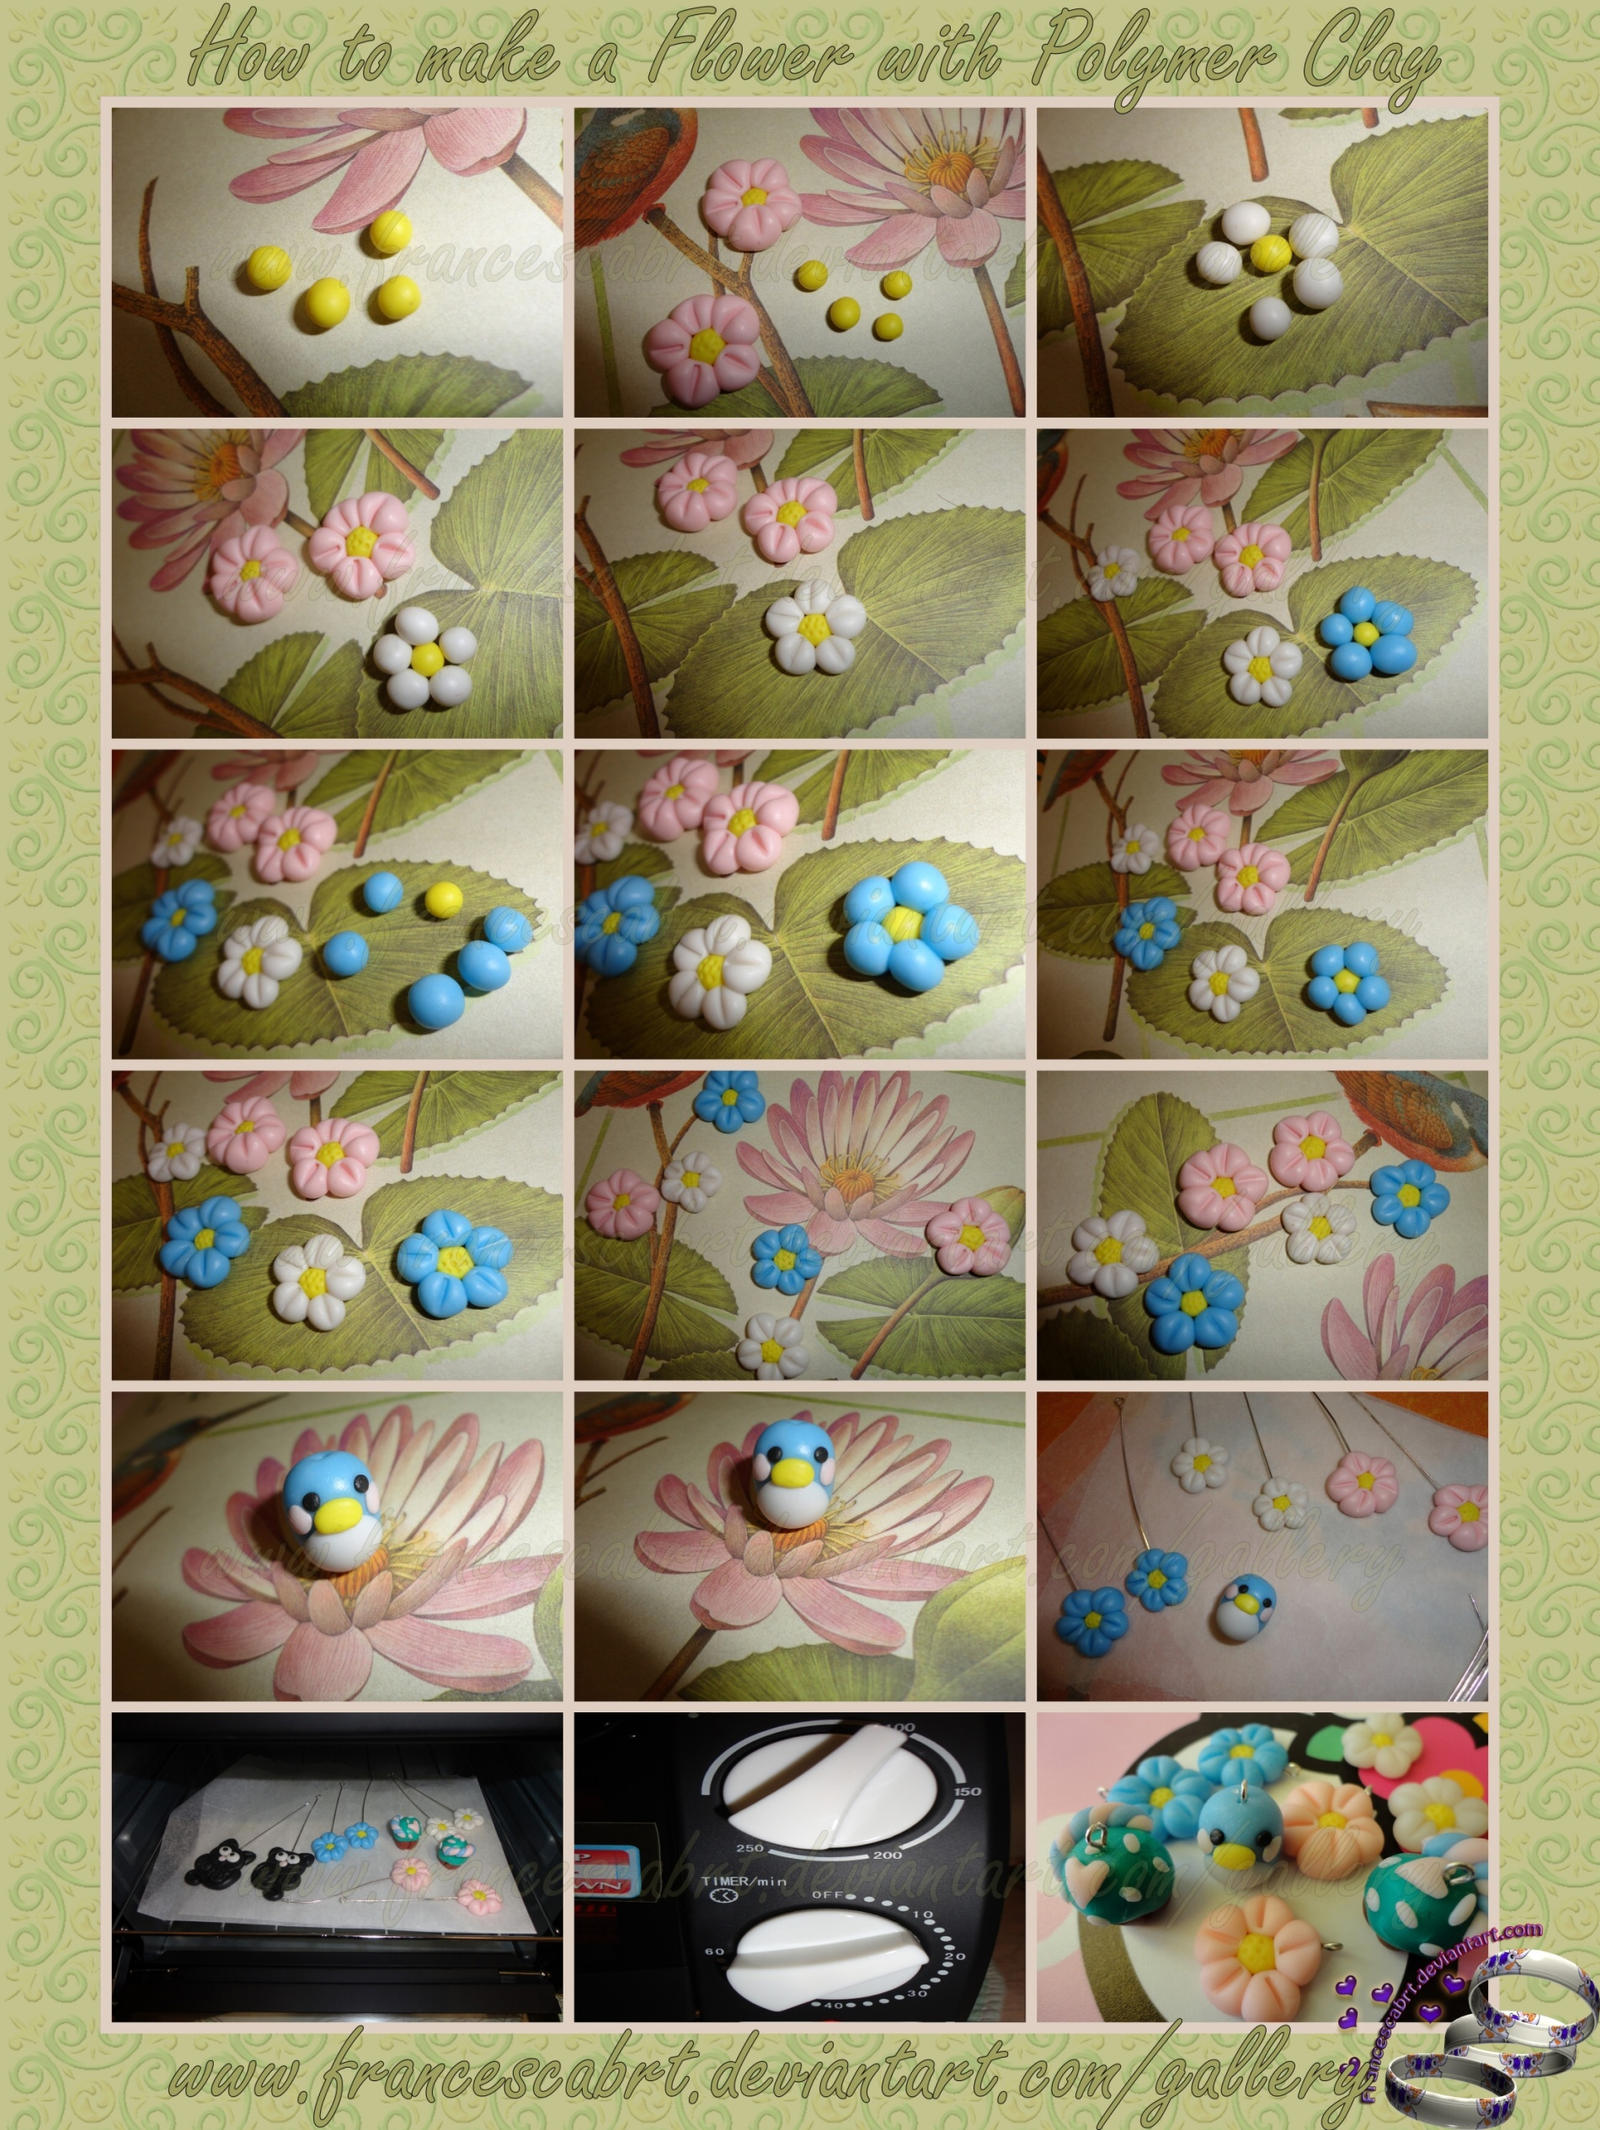 Tutorial How to make a Flower with Polymer Clay by FrancescaBrt on DeviantArt